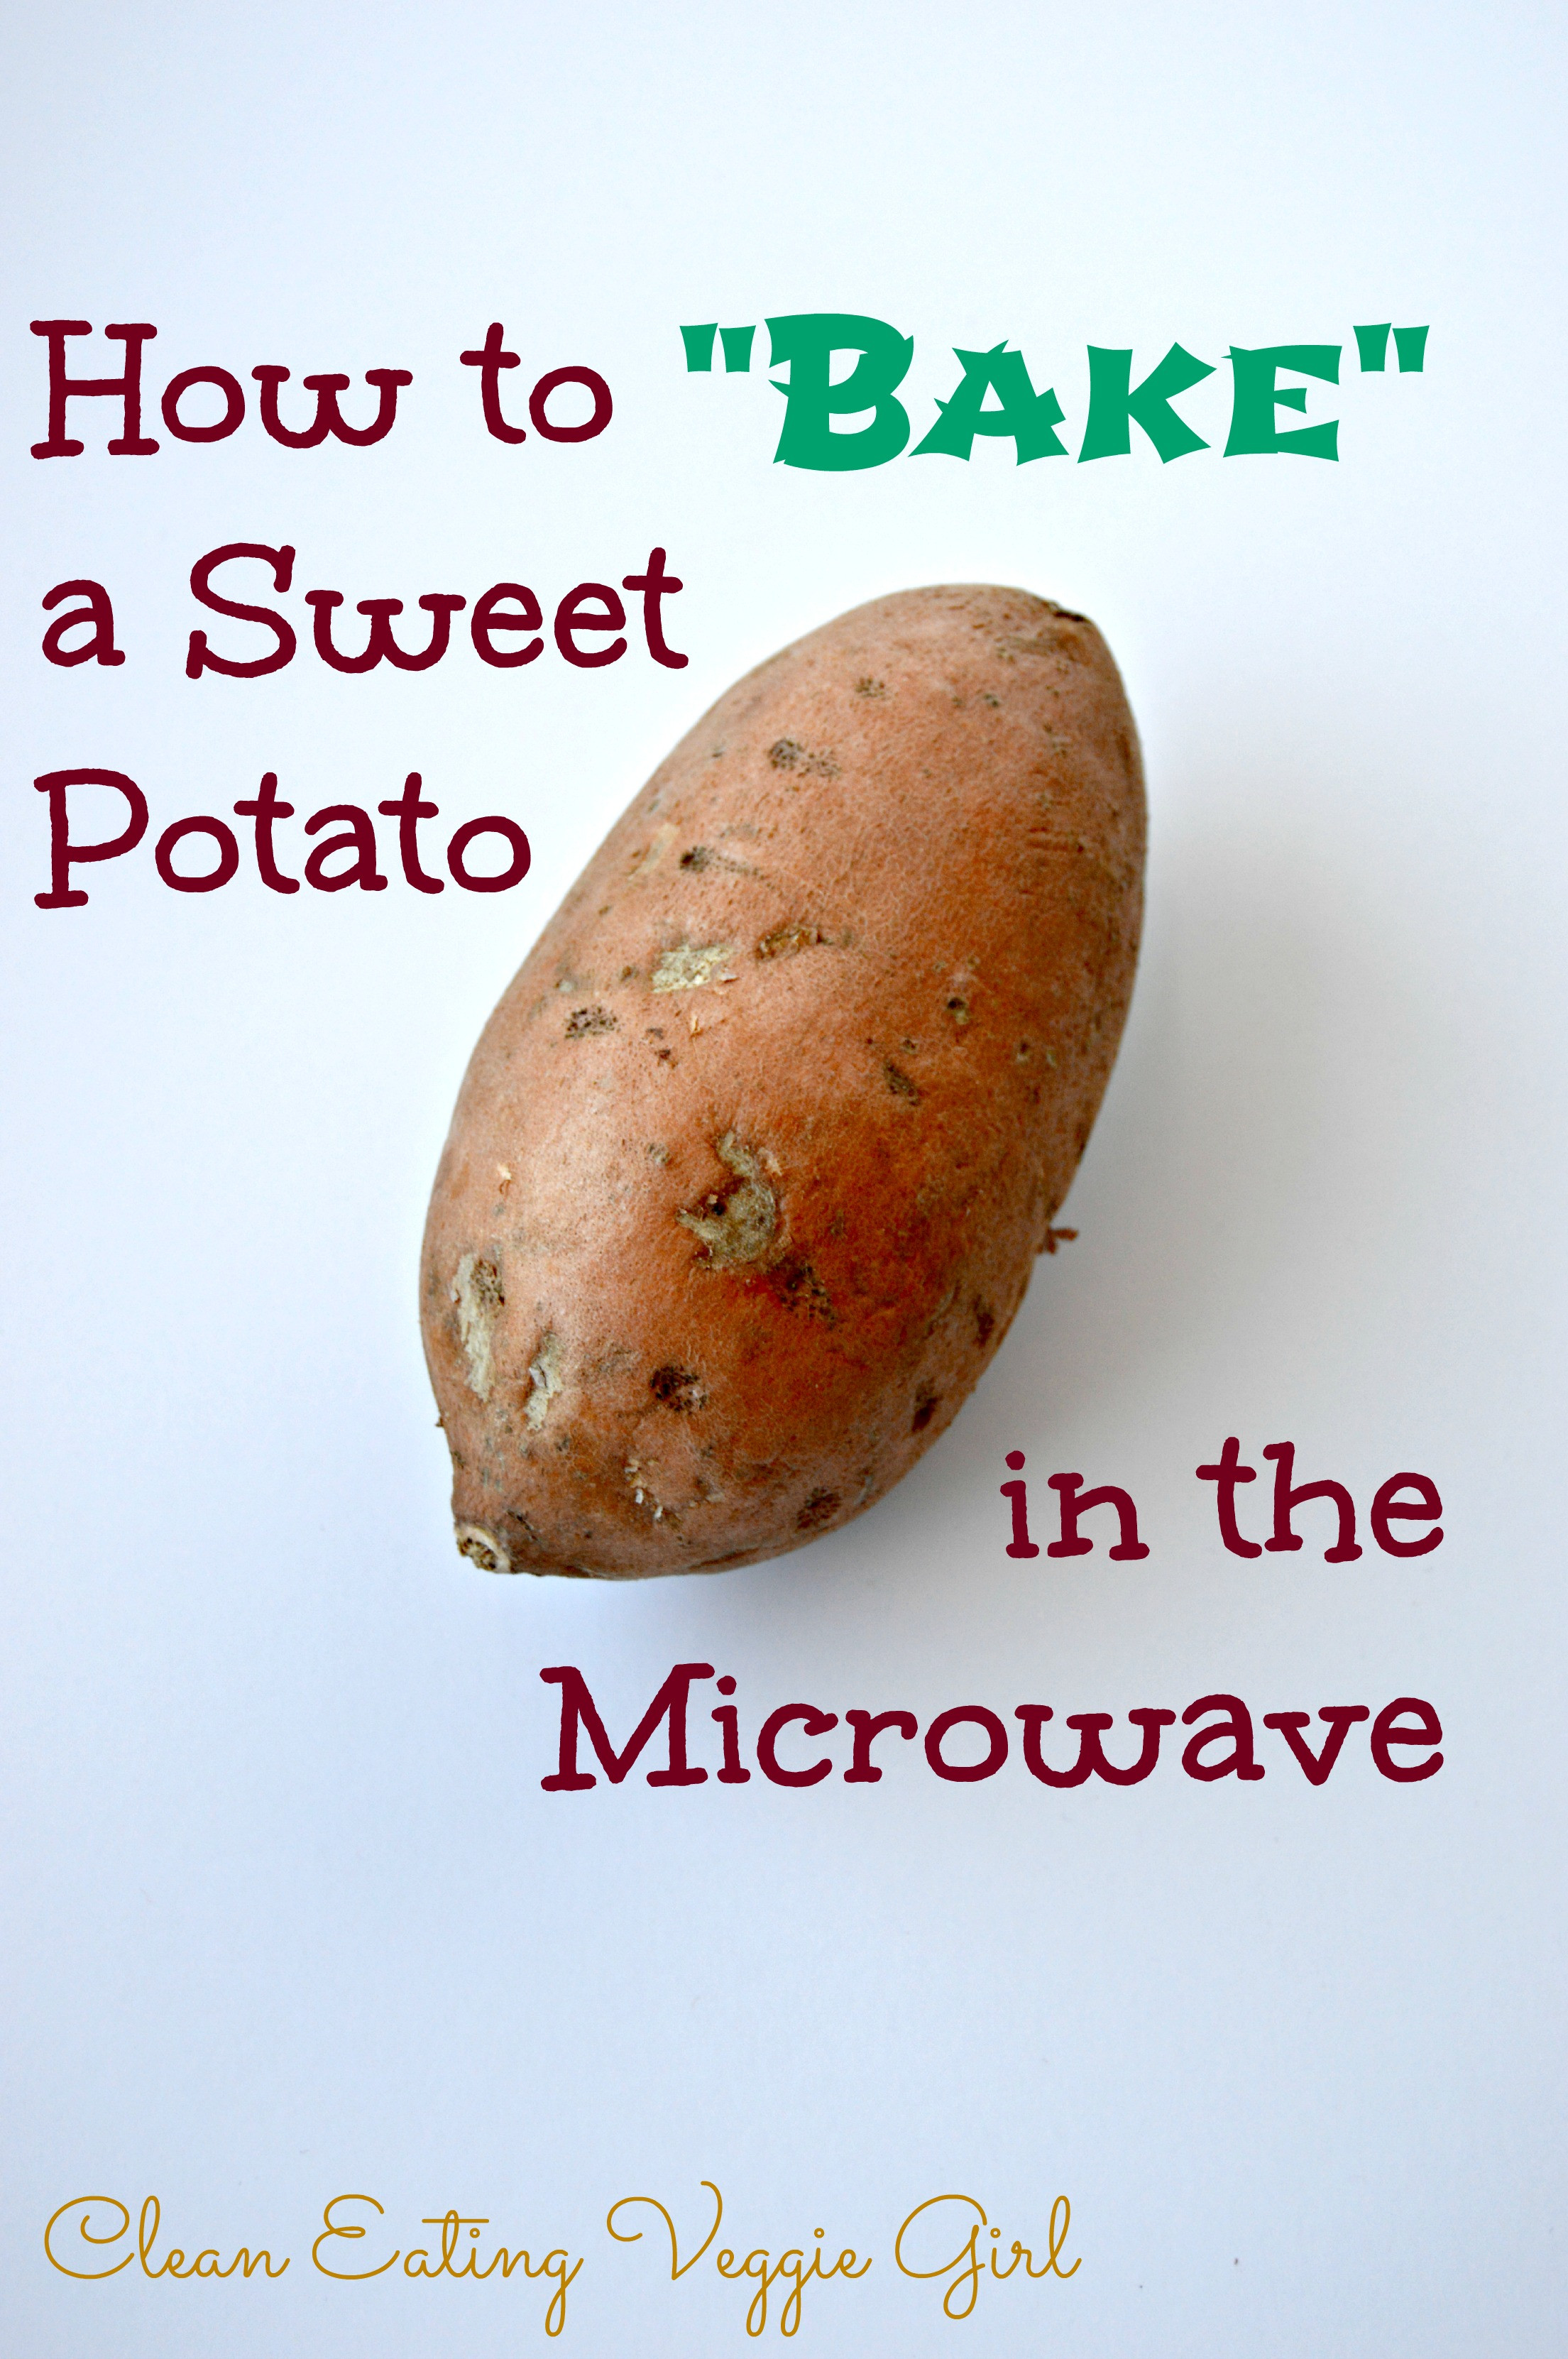 How To Cook A Baked Potato  How to Make a Baked Sweet Potato in the Microwave Clean